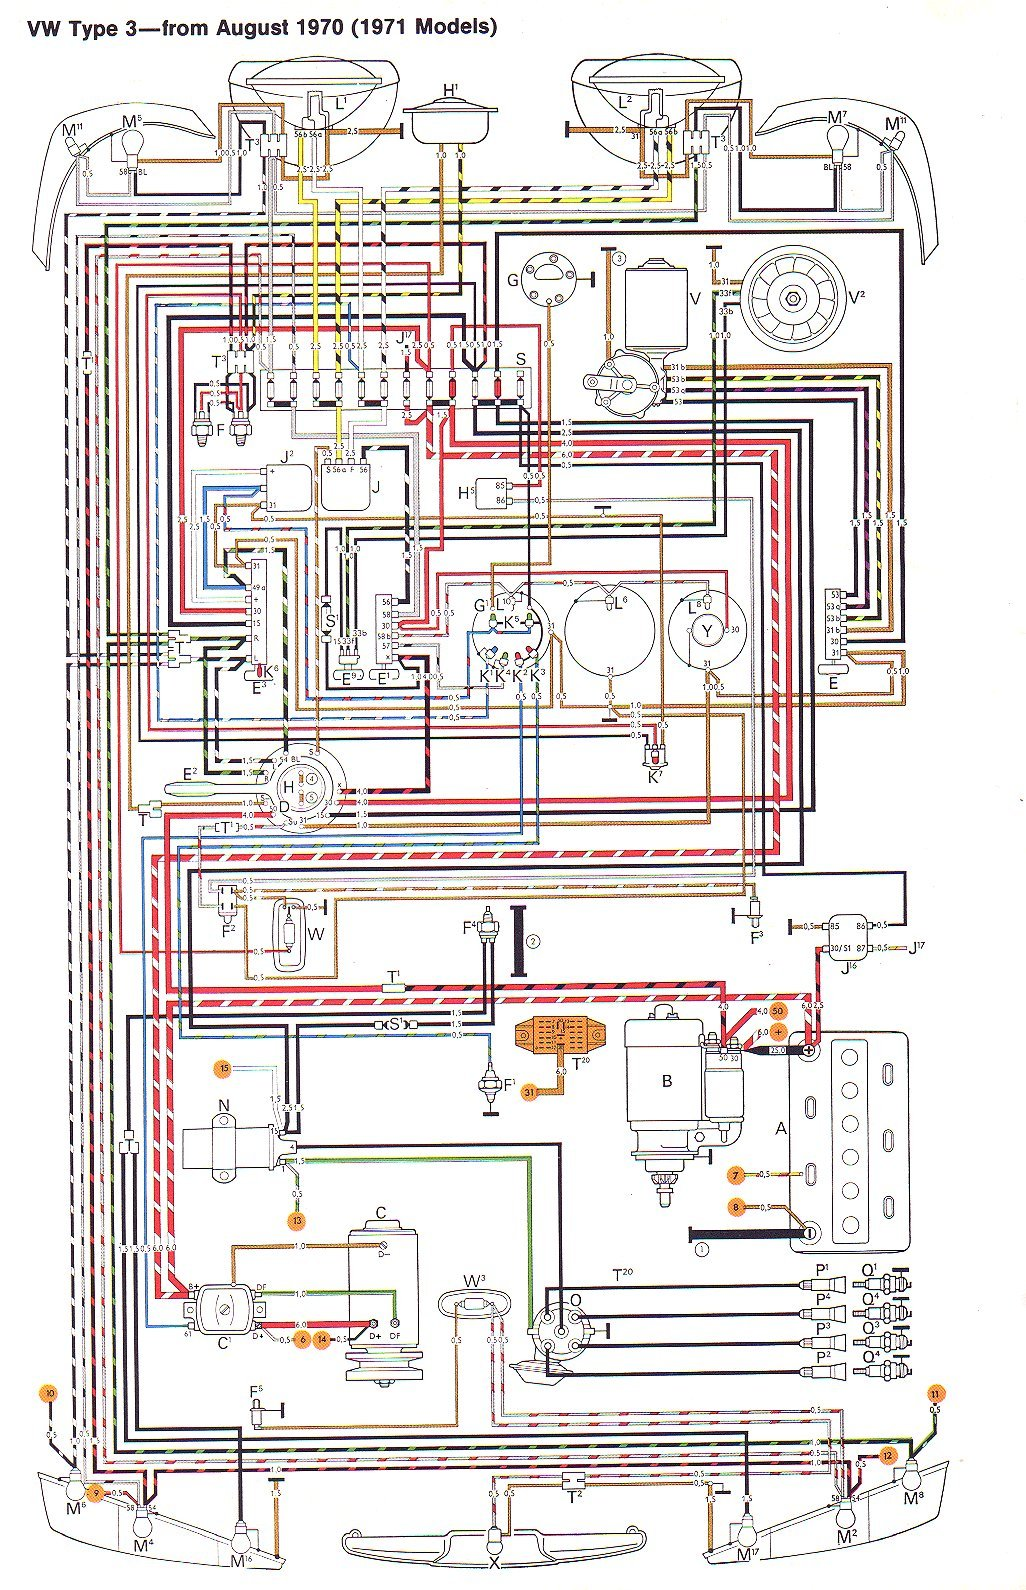 wire71t3 vw type 3 wiring diagrams XJ6 Wiring-Diagram at fashall.co